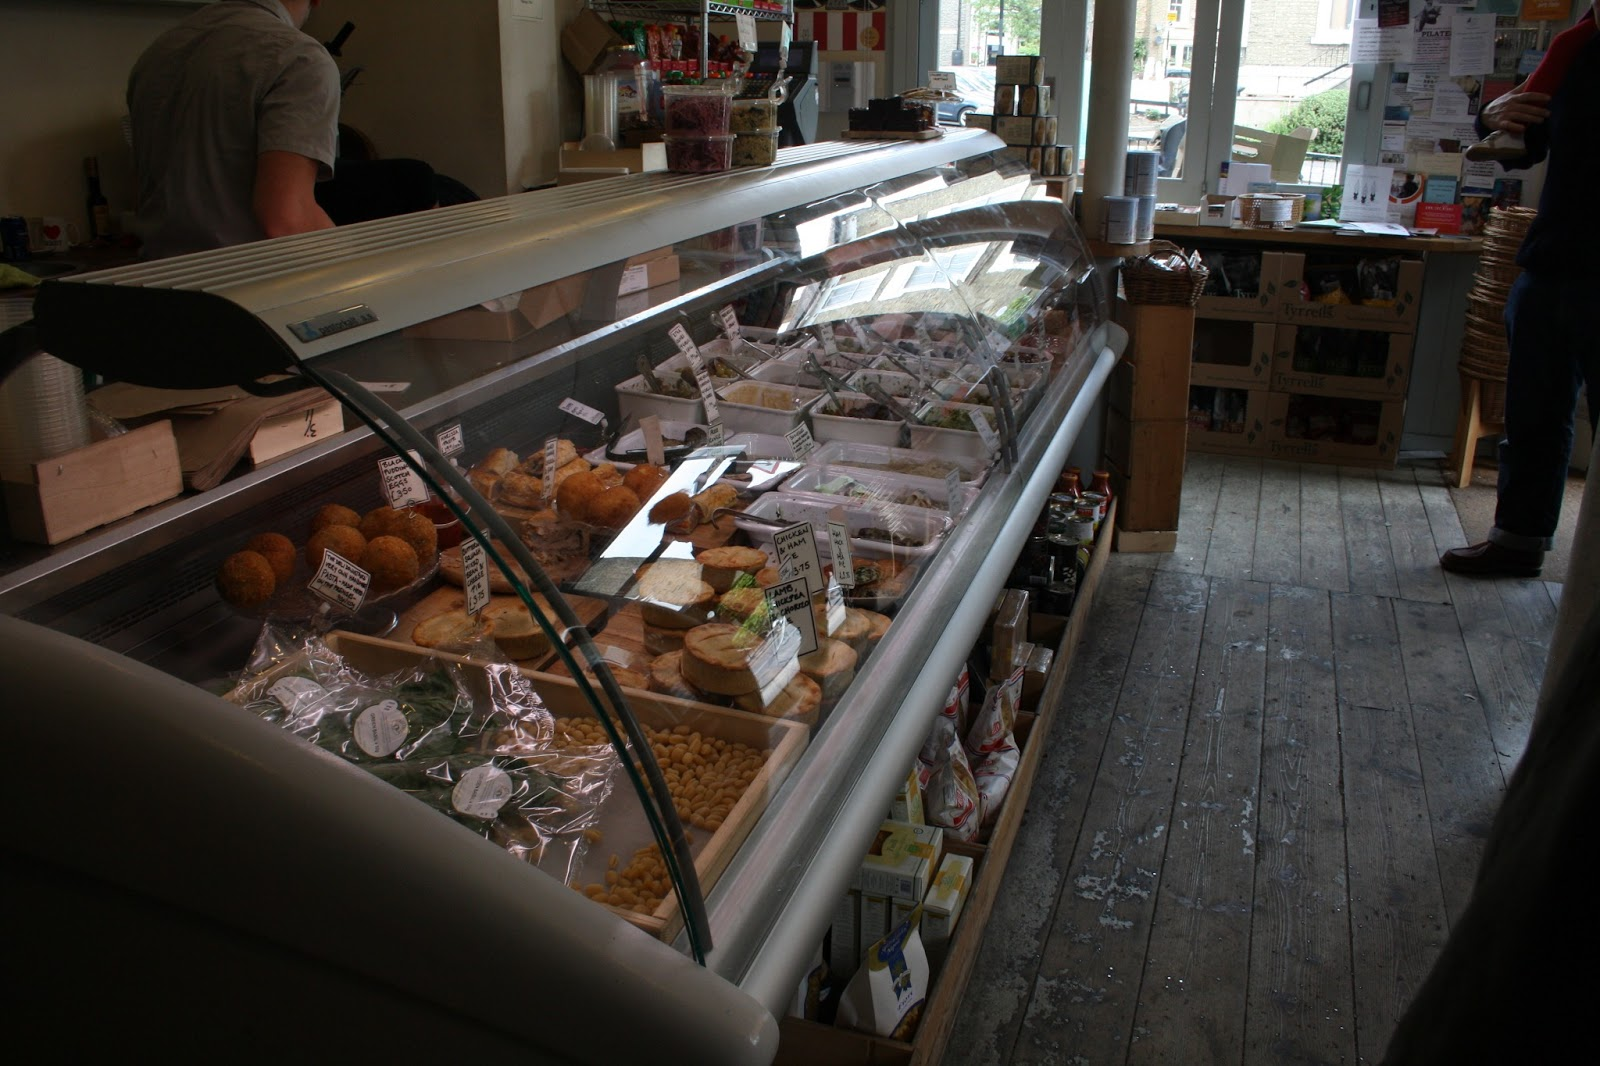 Becoming a Londoner: The Deli Downstairs